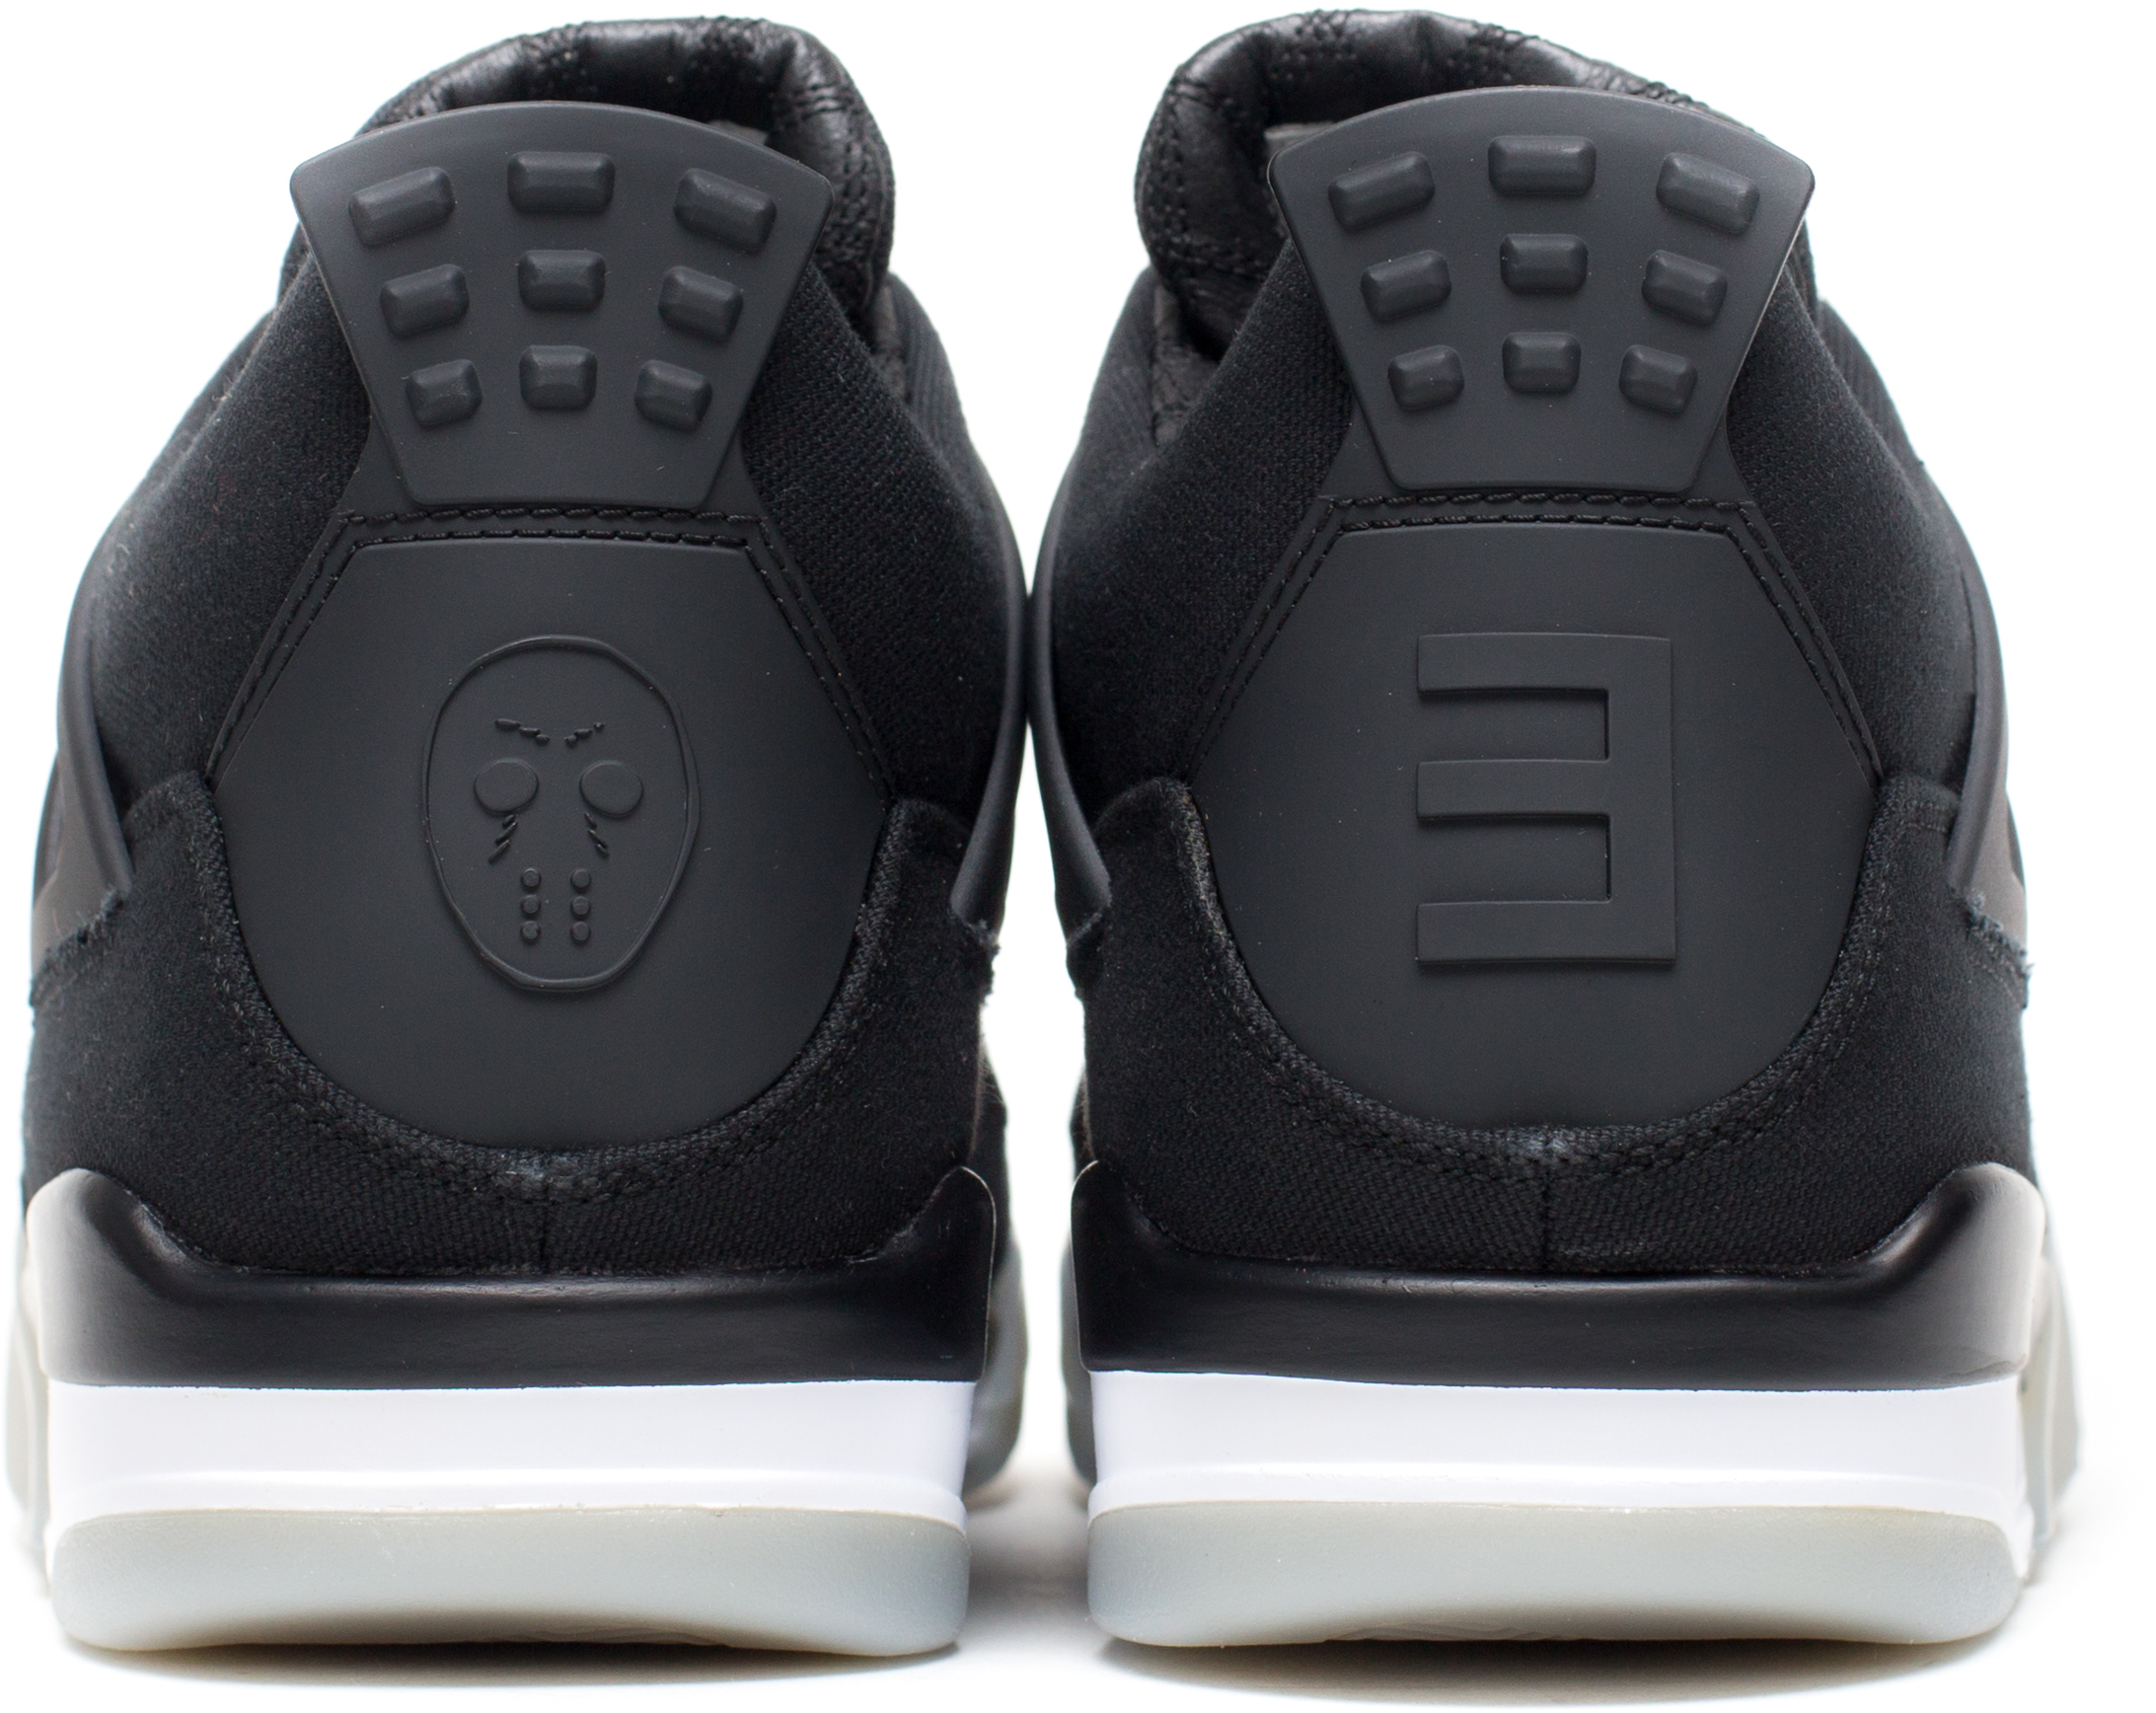 reputable site 1f410 9a35b air jordan 4 x eminem x carhartt